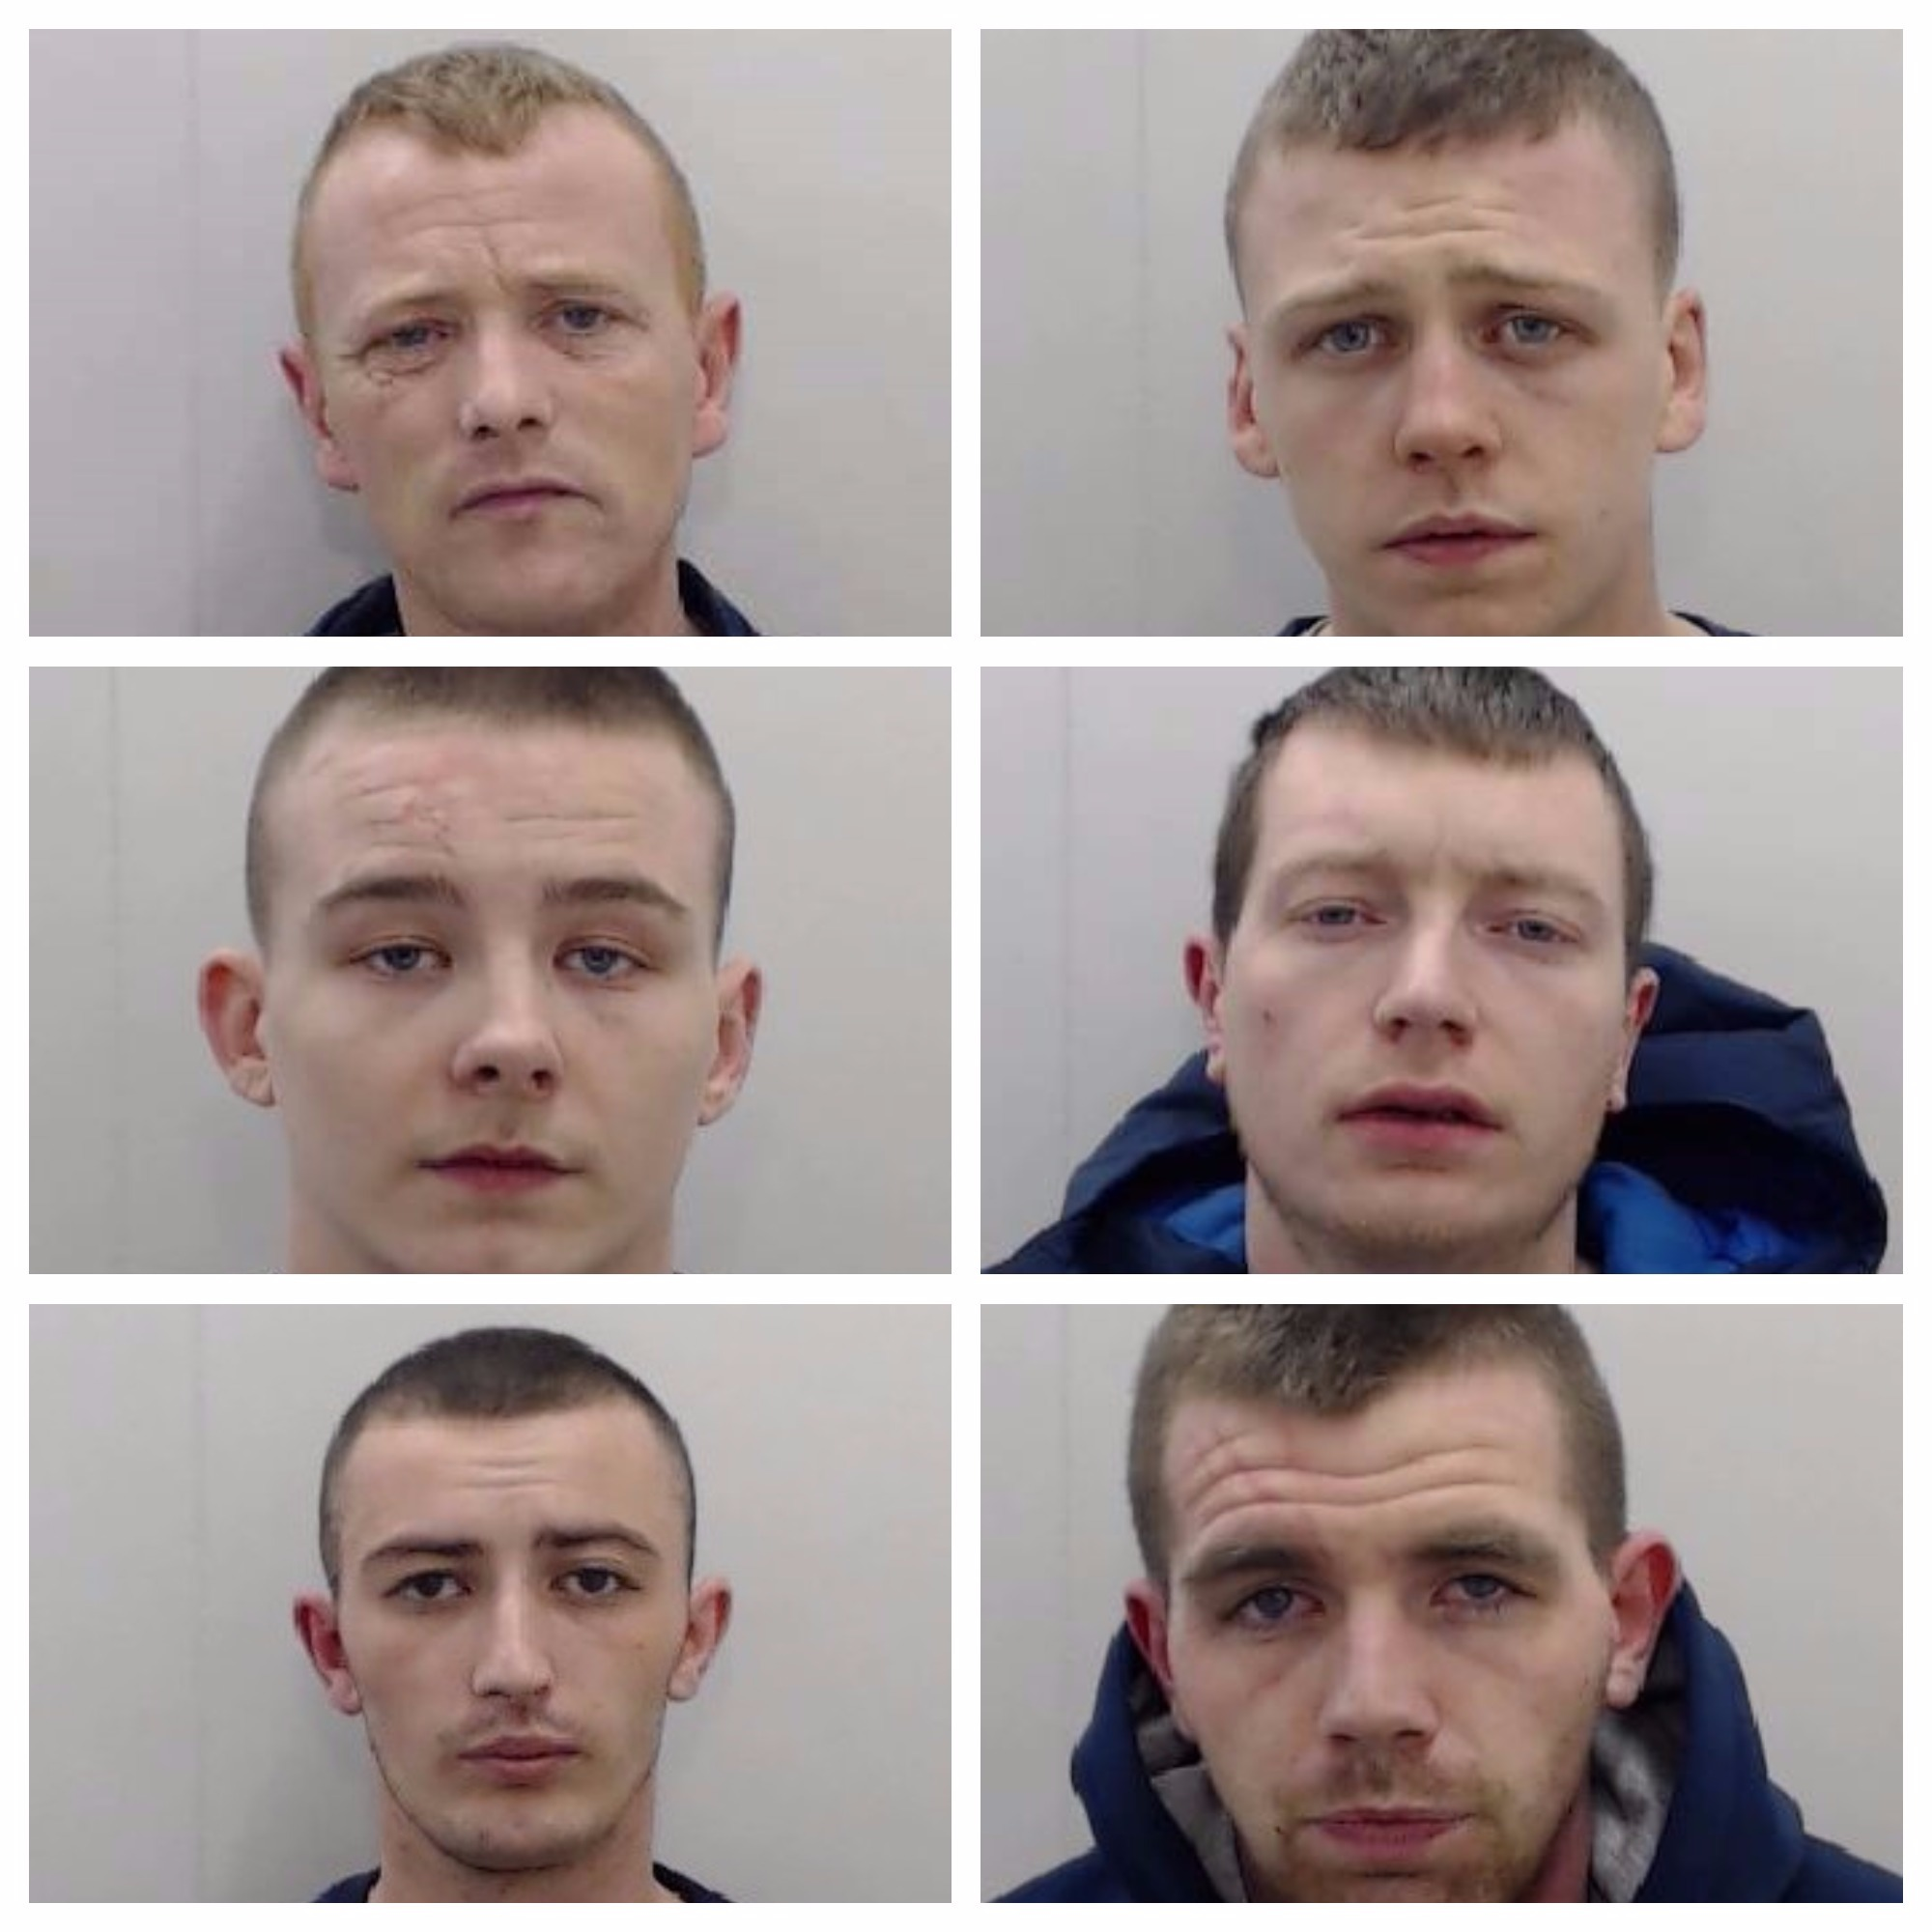 Members of crime gang jailed for spate of robberies and burglaries after posting photo of stolen car on Facebook